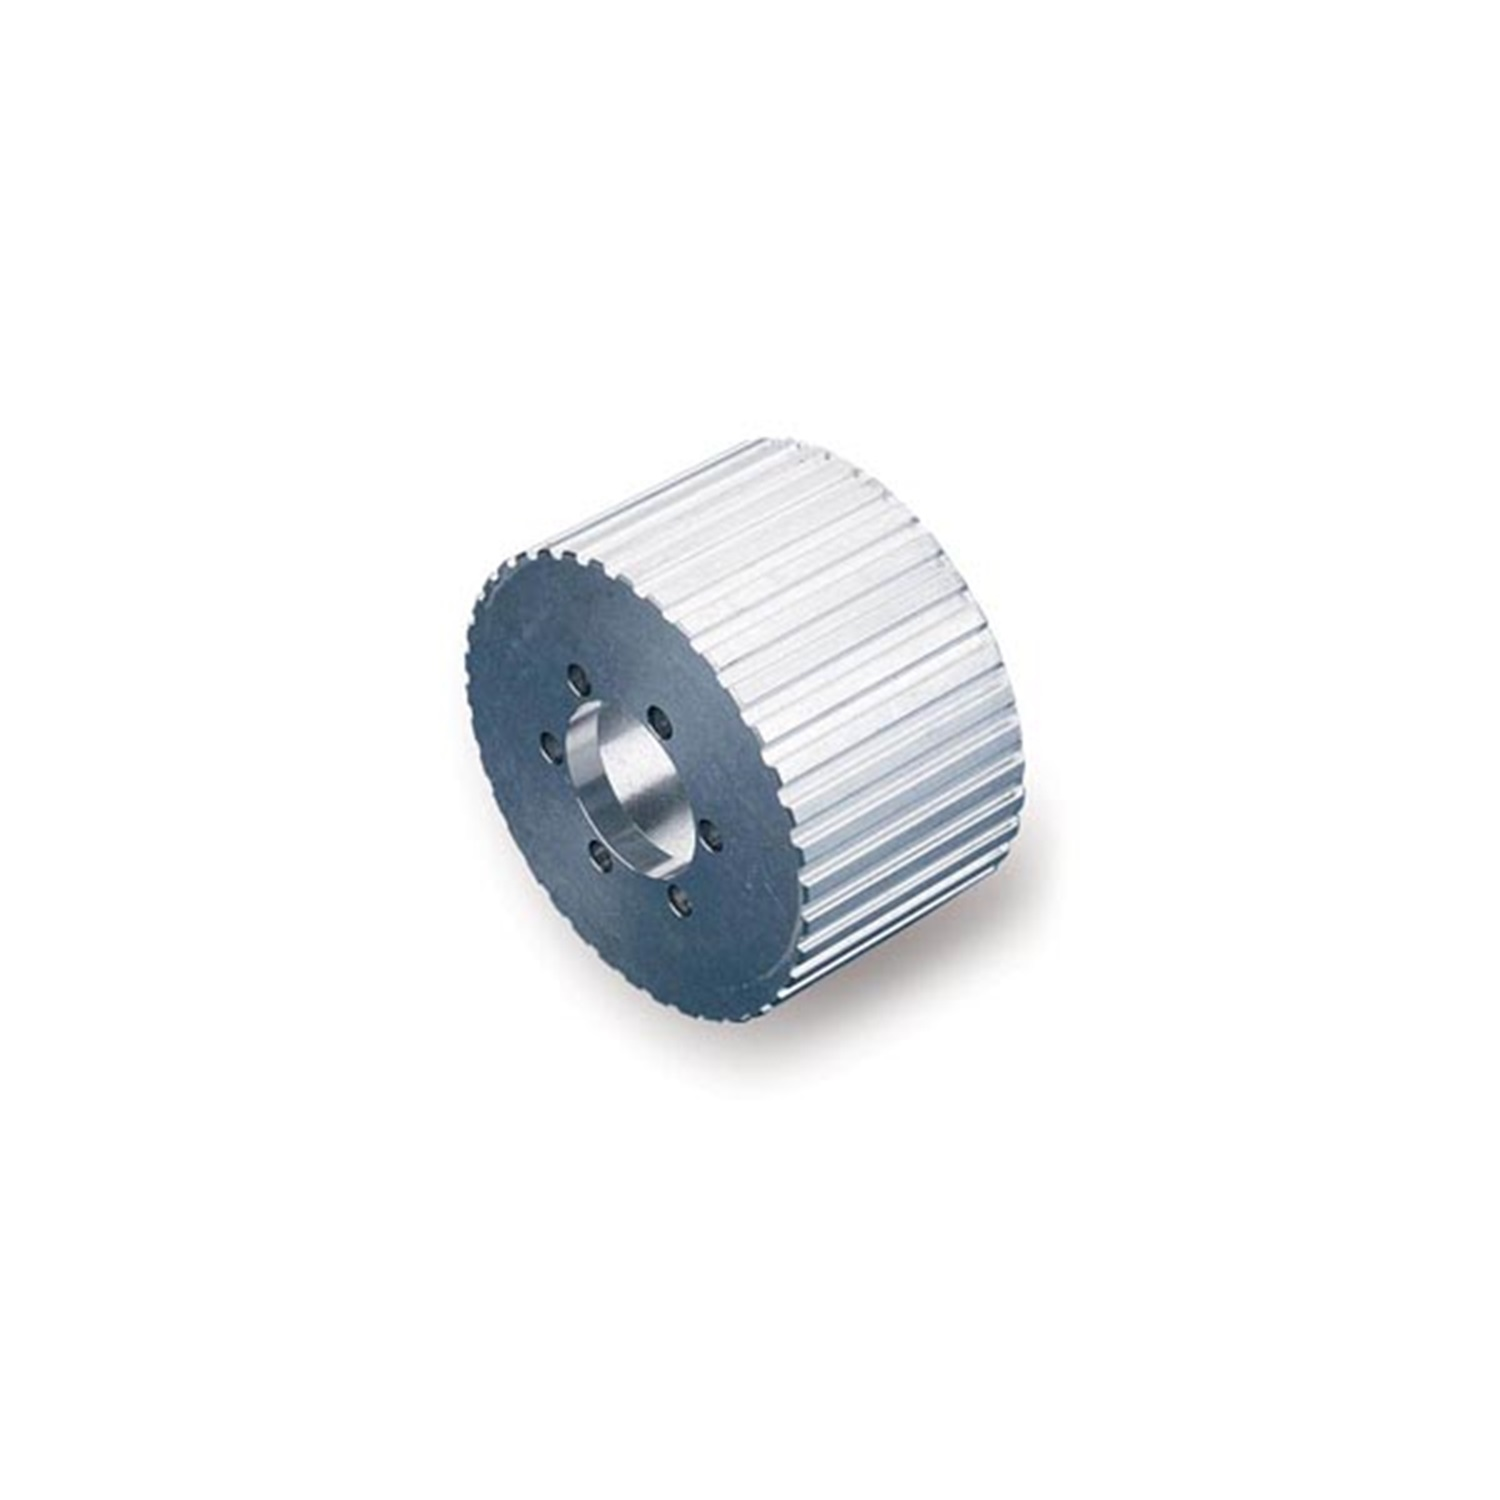 WEIAND 7029-33 0.5 in. Pitch Drive Pulley